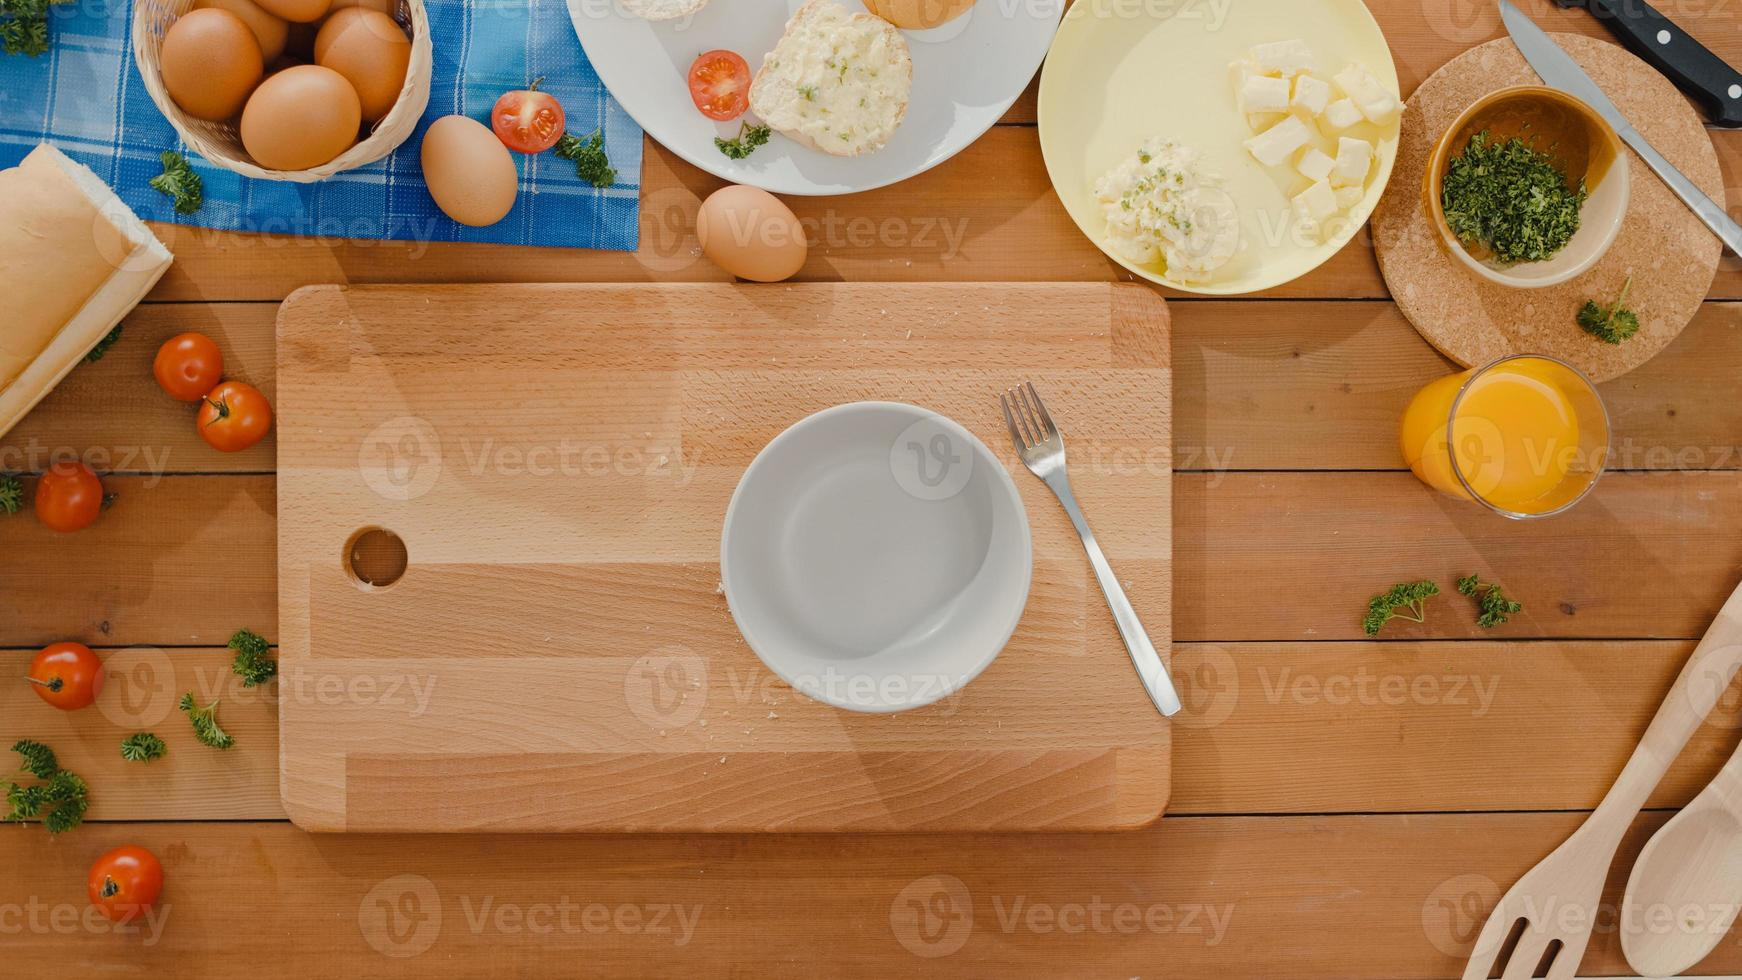 Hands of young Asian woman chef crack egg into ceramic bowl cook omelette with vegetables on wooden board on kitchen table in home. Lifestyle healthy eat and traditional bakery concept. Top view shot. photo